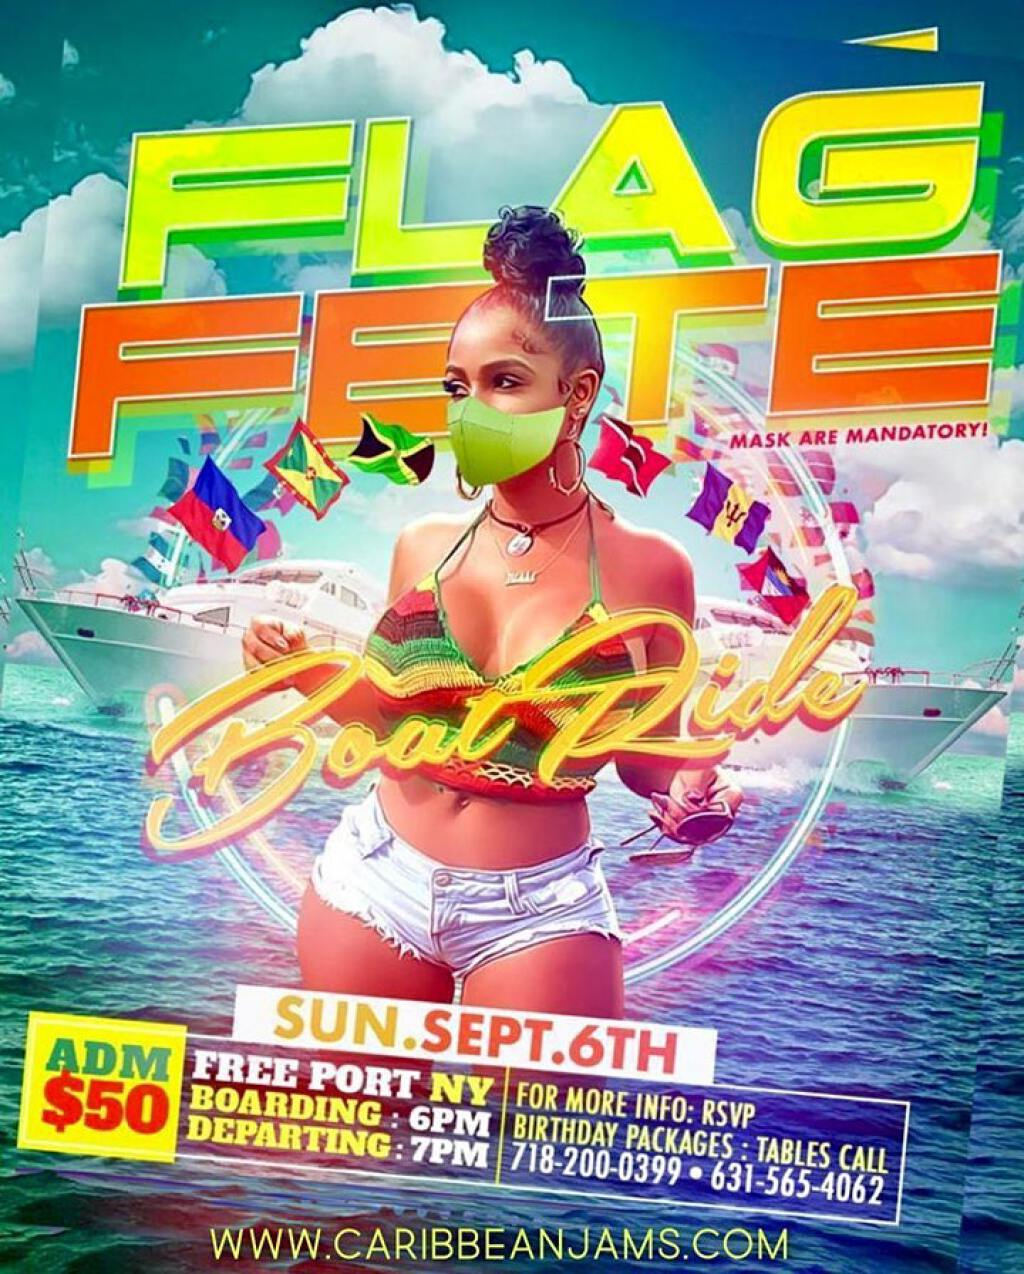 Flag Fete Boat Ride flyer or graphic.